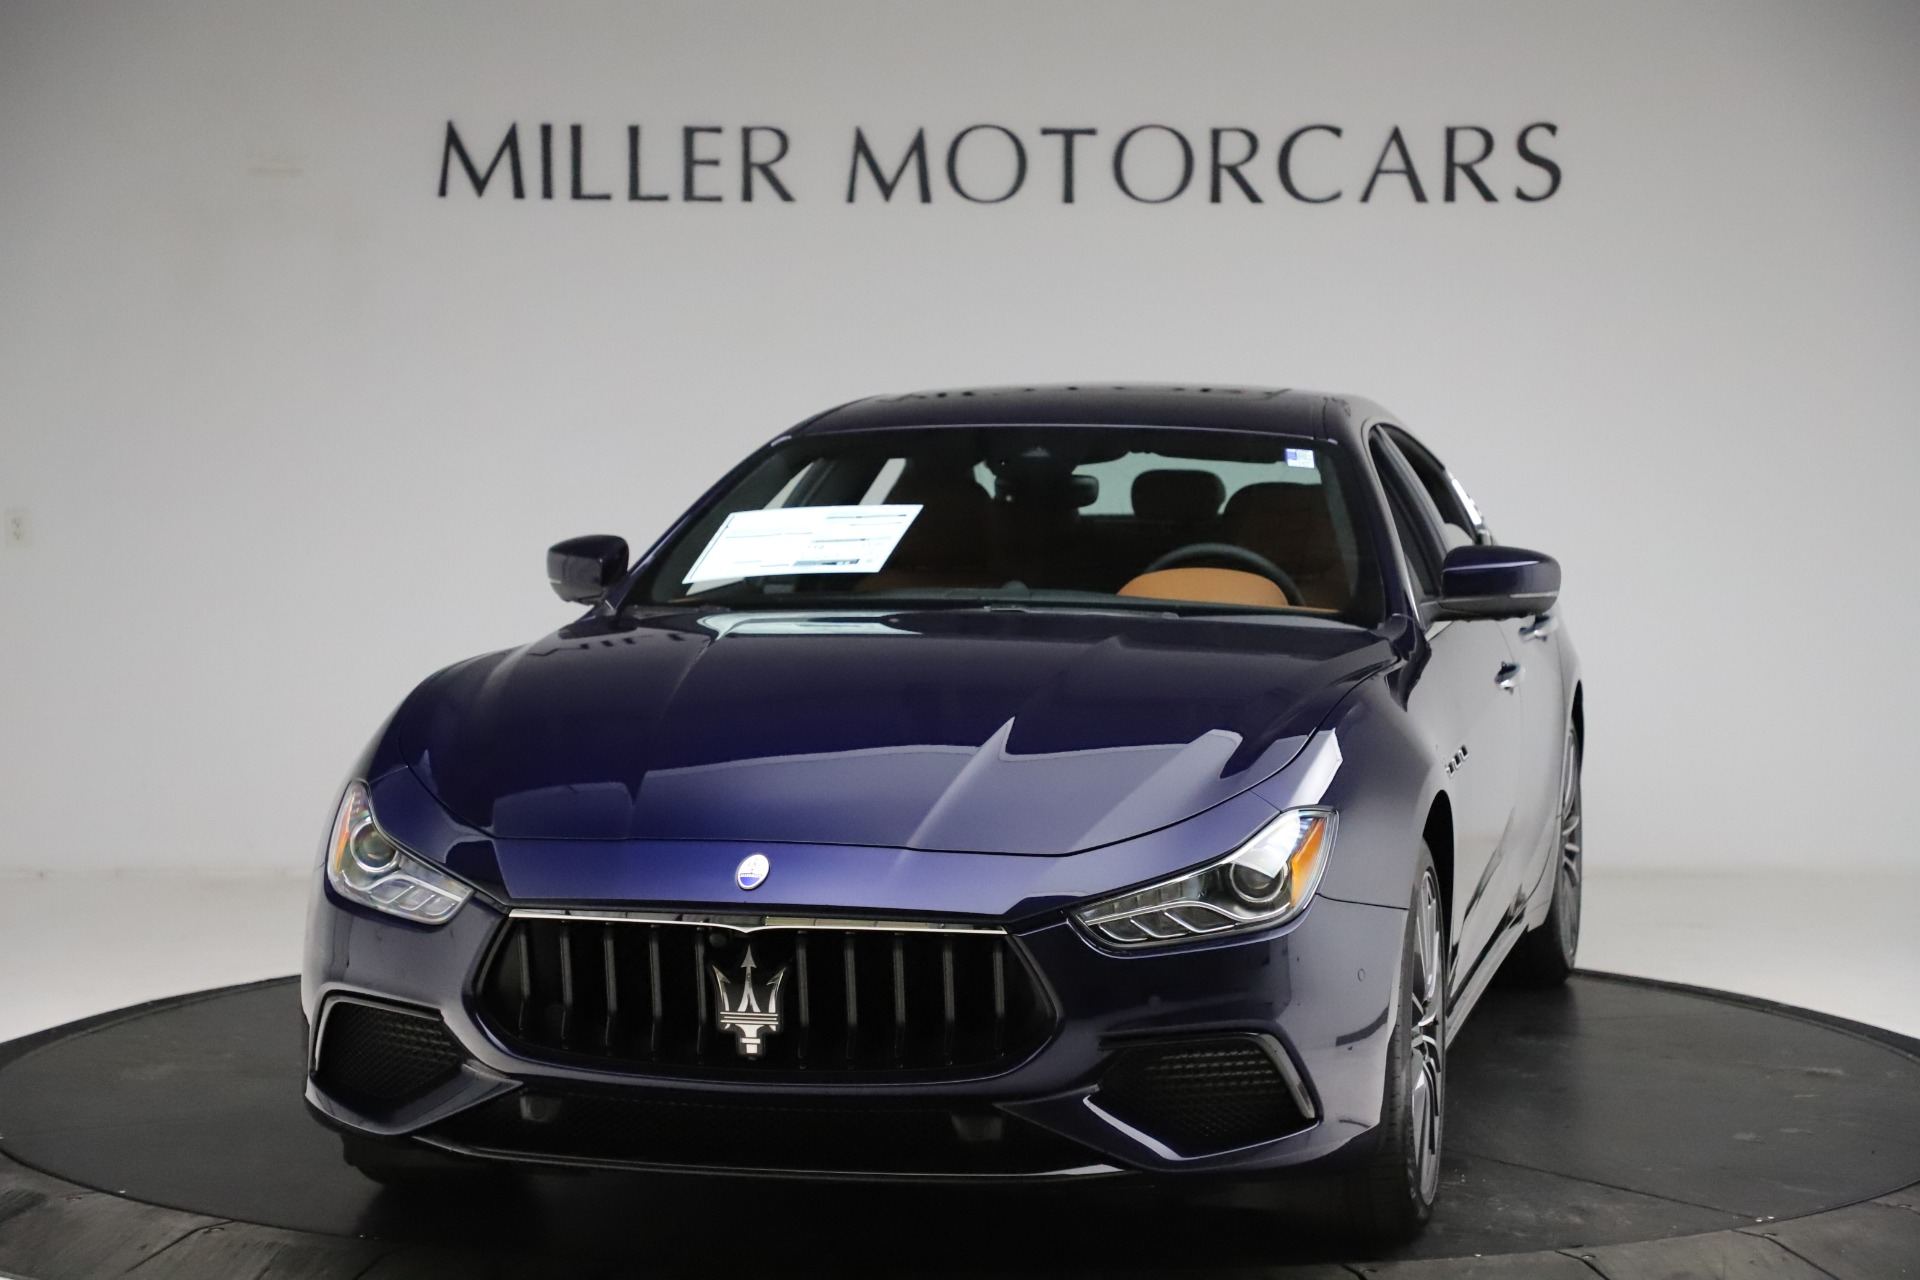 New 2021 Maserati Ghibli S Q4 for sale $90,925 at Alfa Romeo of Greenwich in Greenwich CT 06830 1